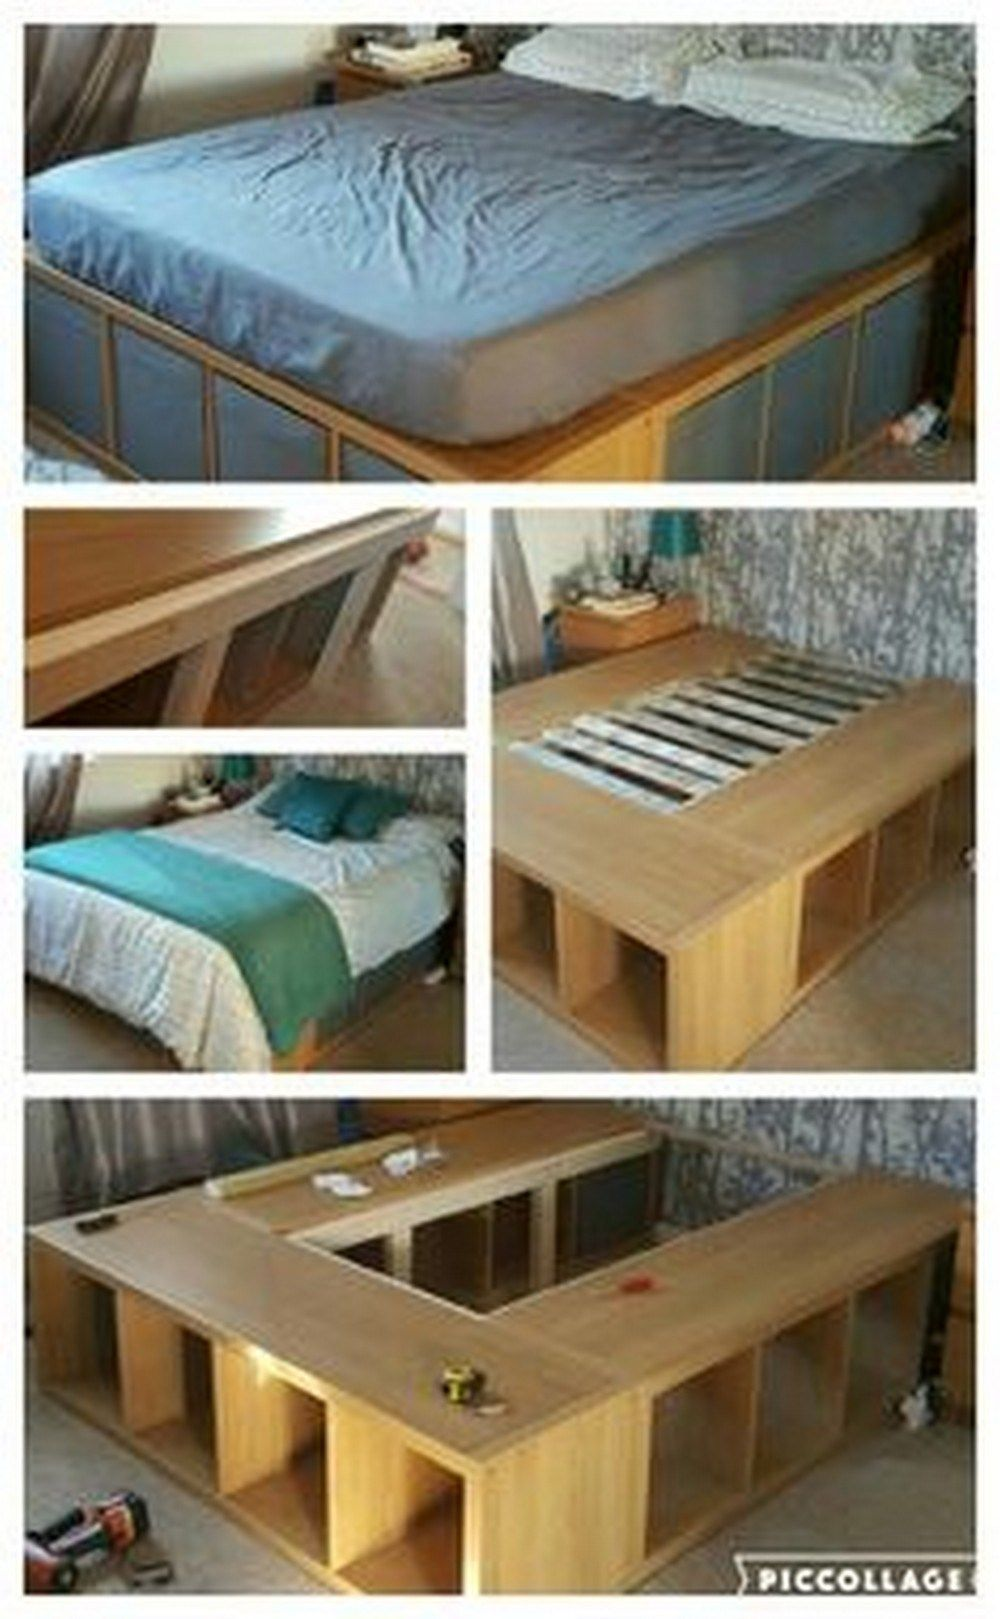 82 Incredible IKEA Hacks for Home Decoration Ideas | Jugendzimmer ...